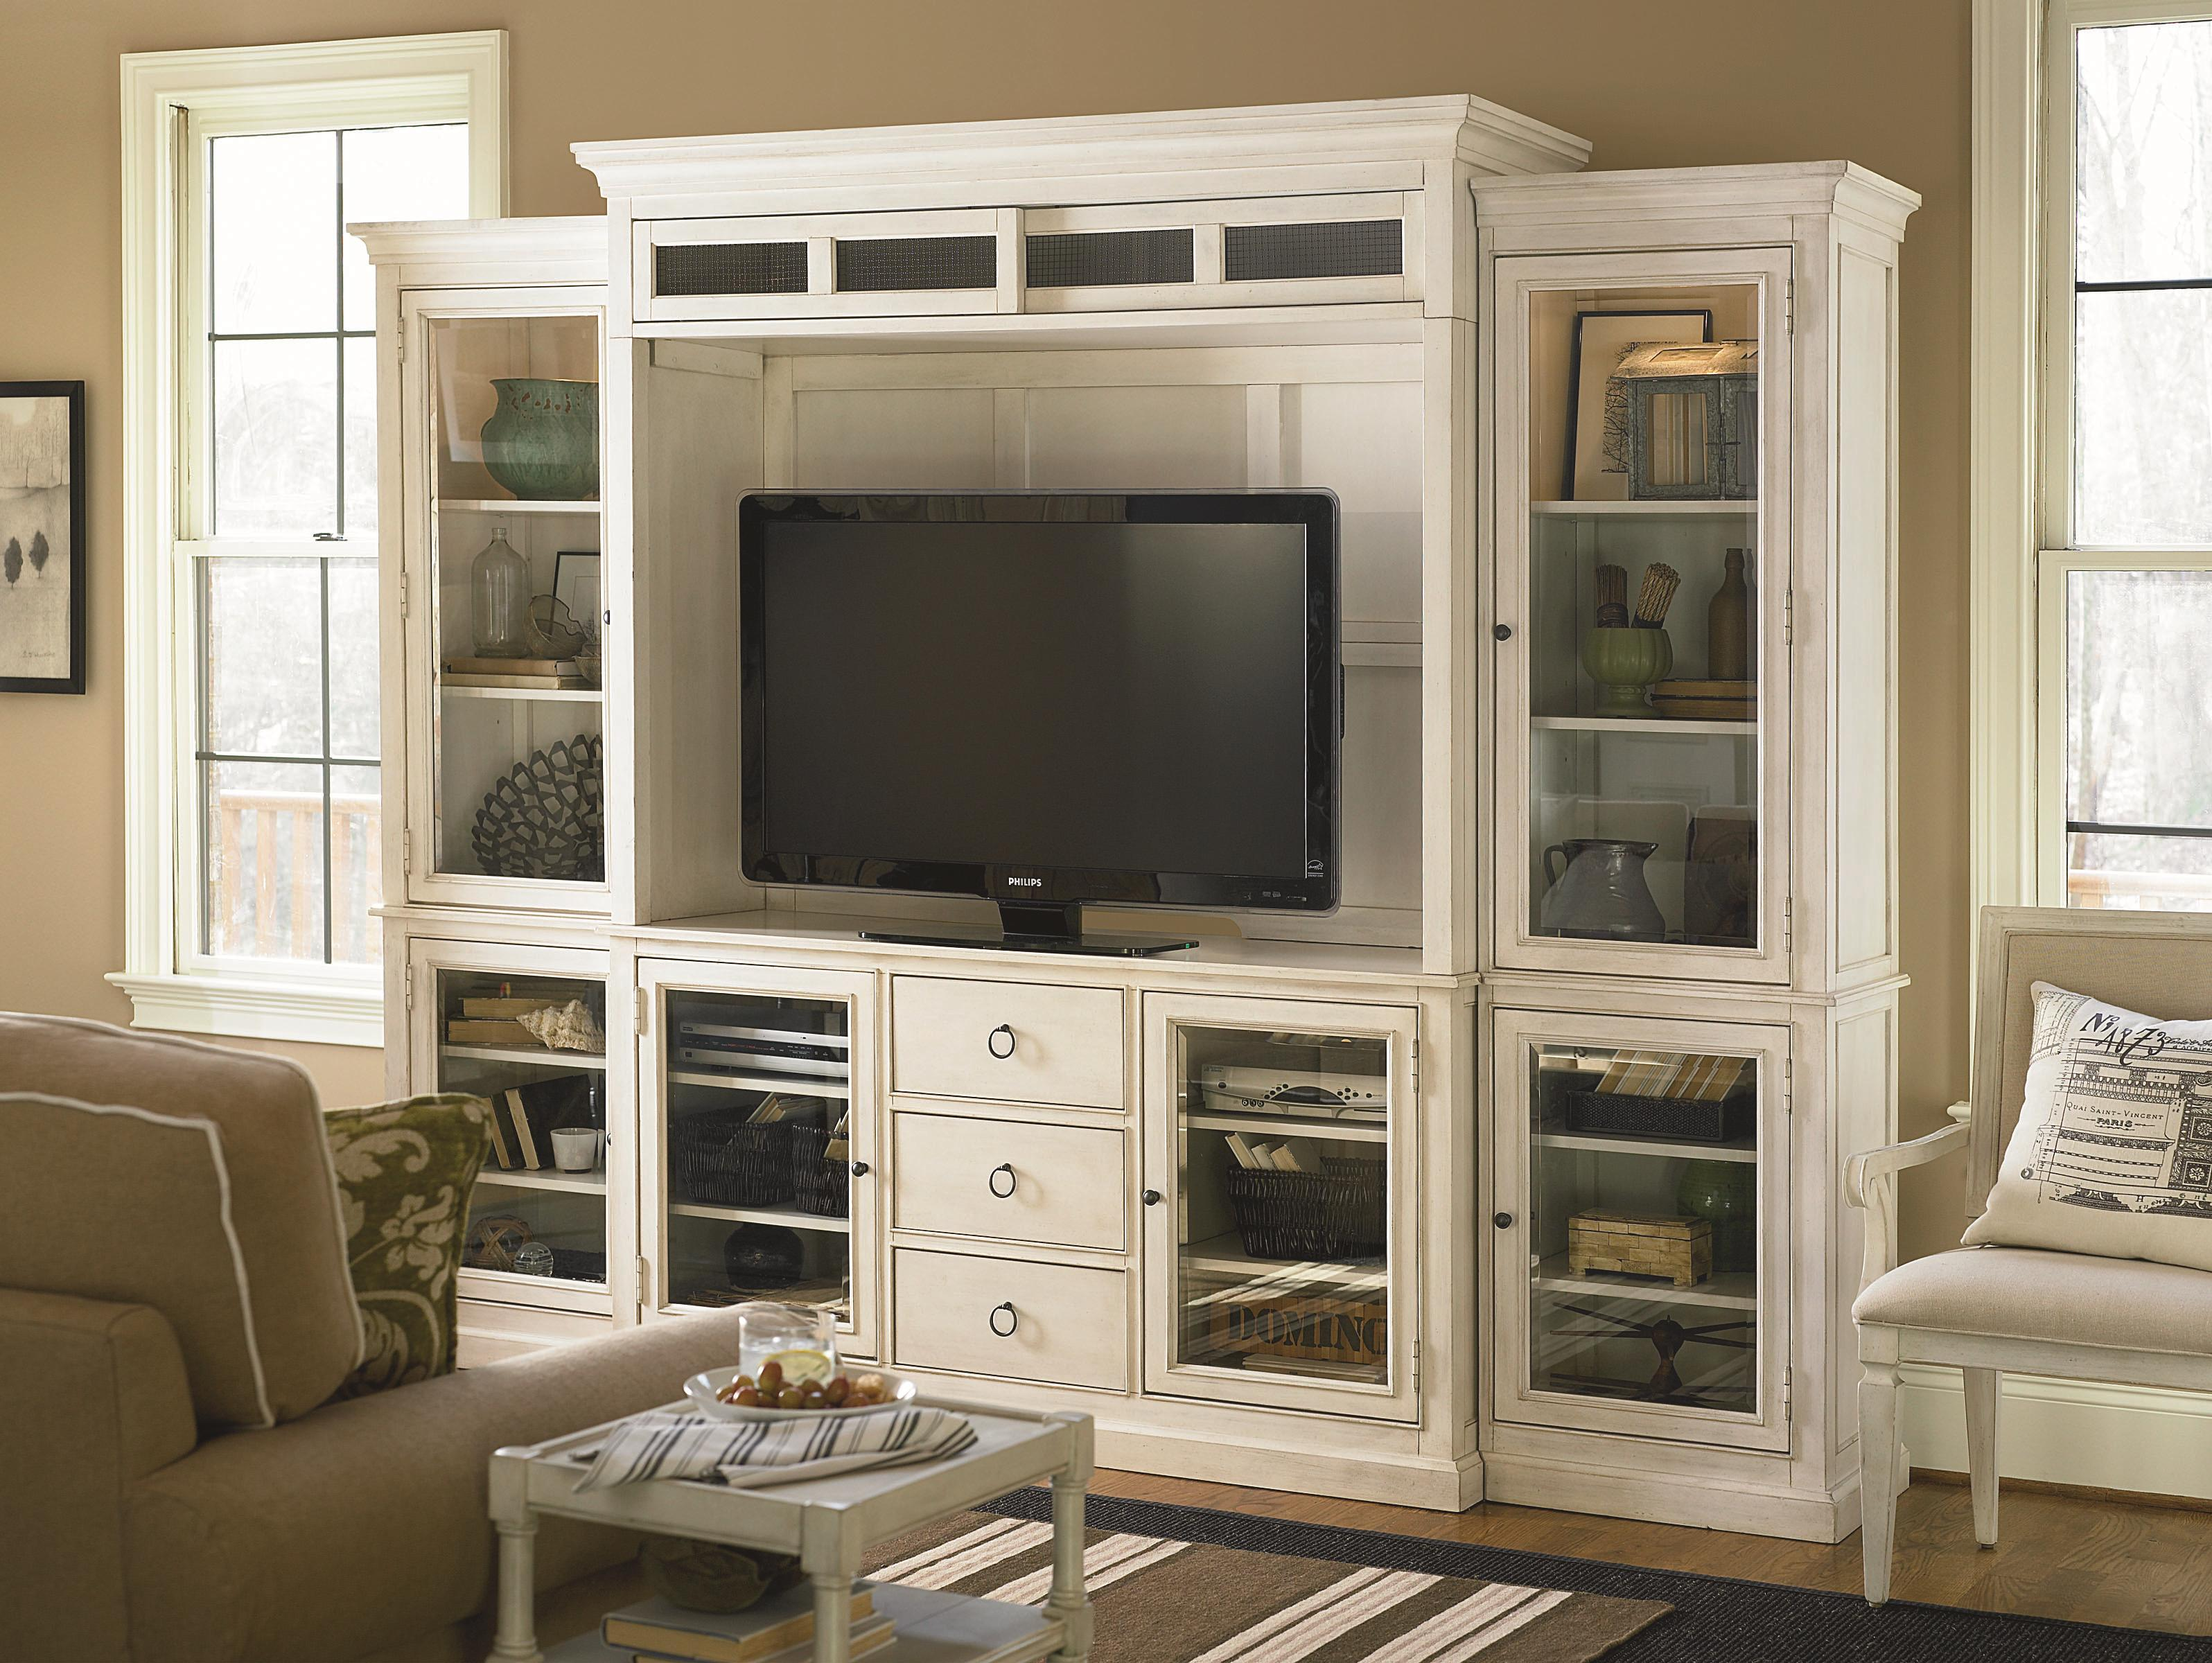 Summer Hill 987 By Universal Hudson S Furniture